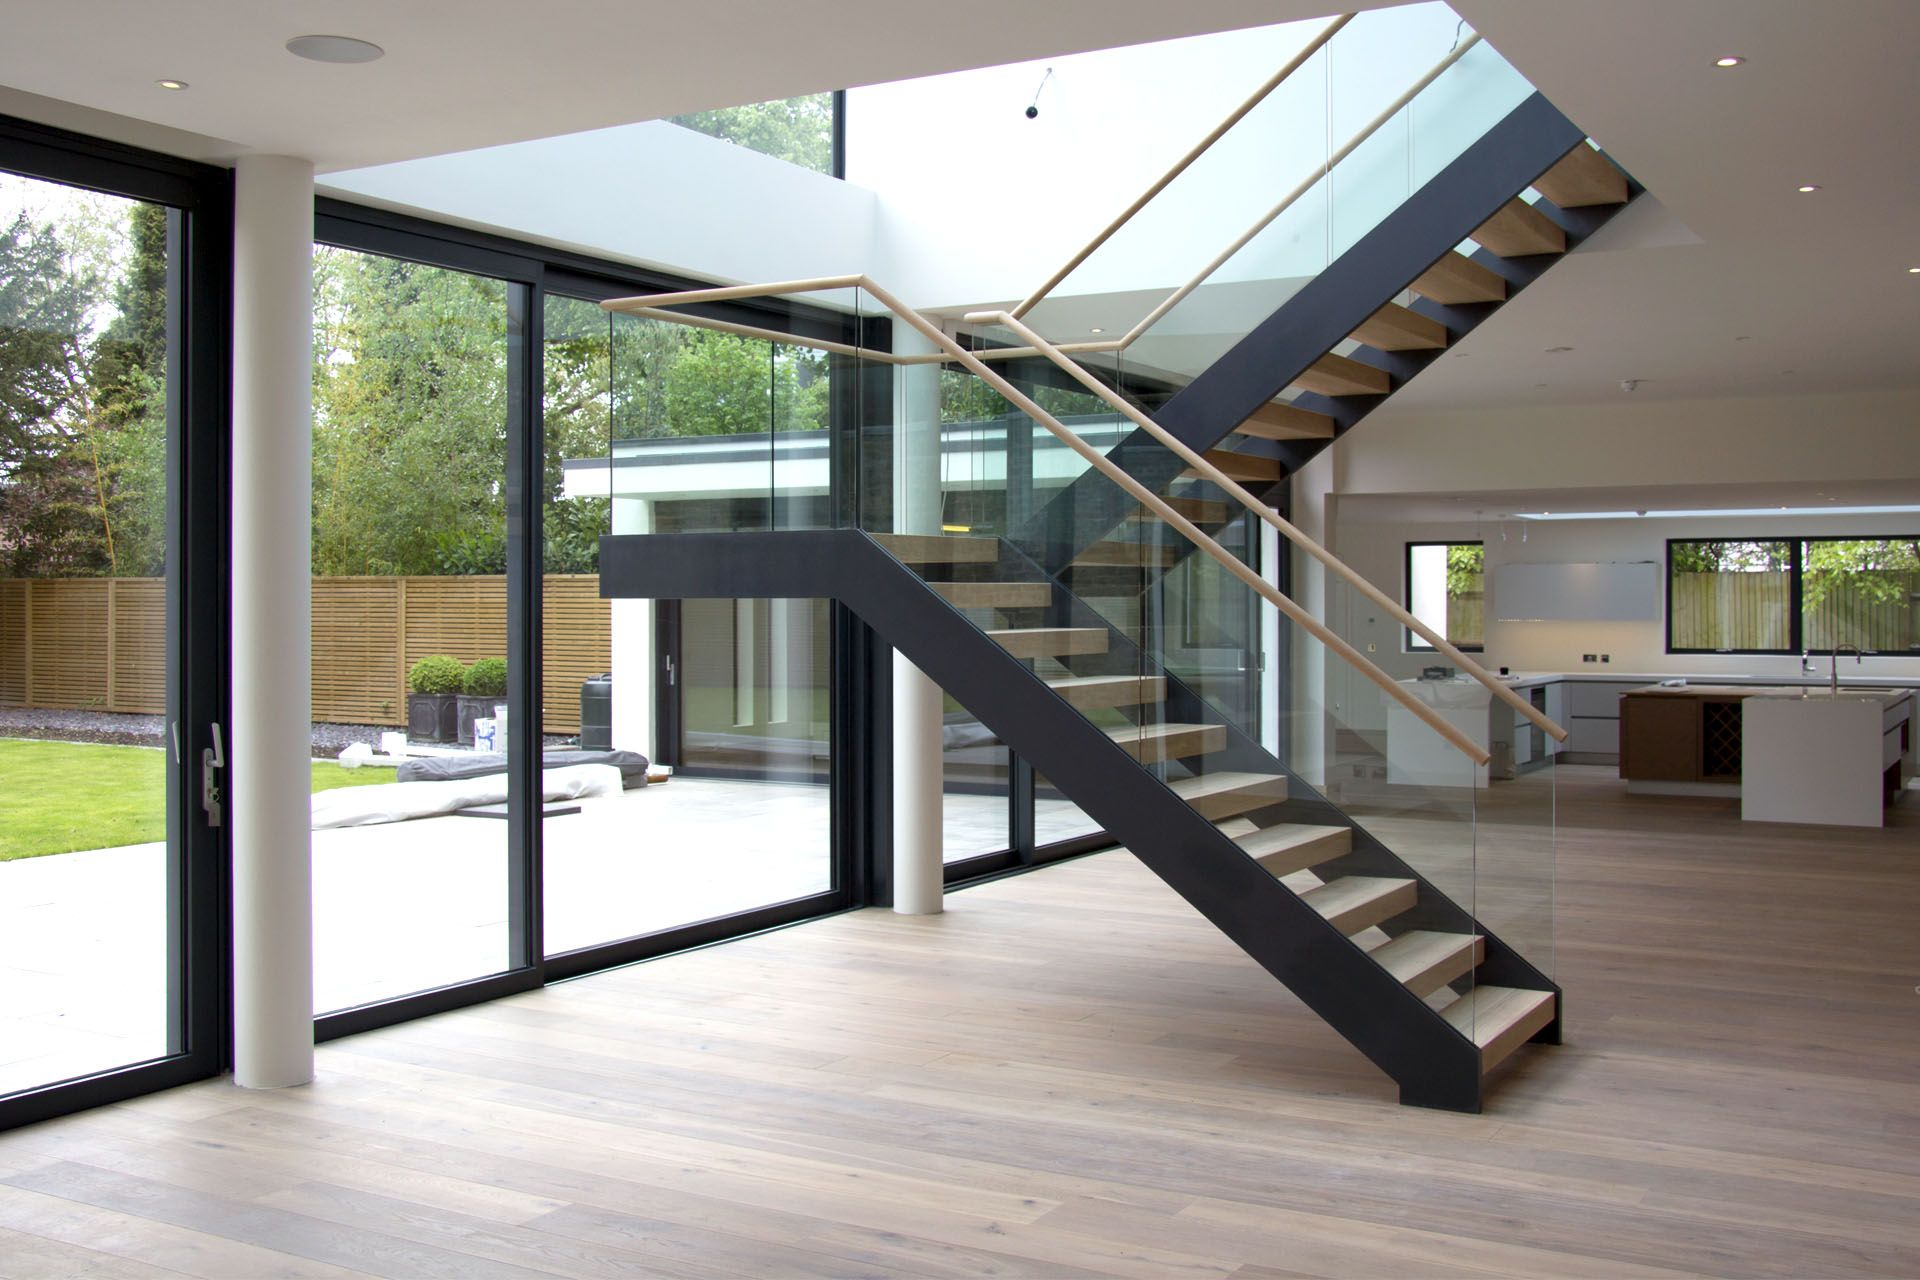 The Demax Coach House Cantilever Staircase is just ...